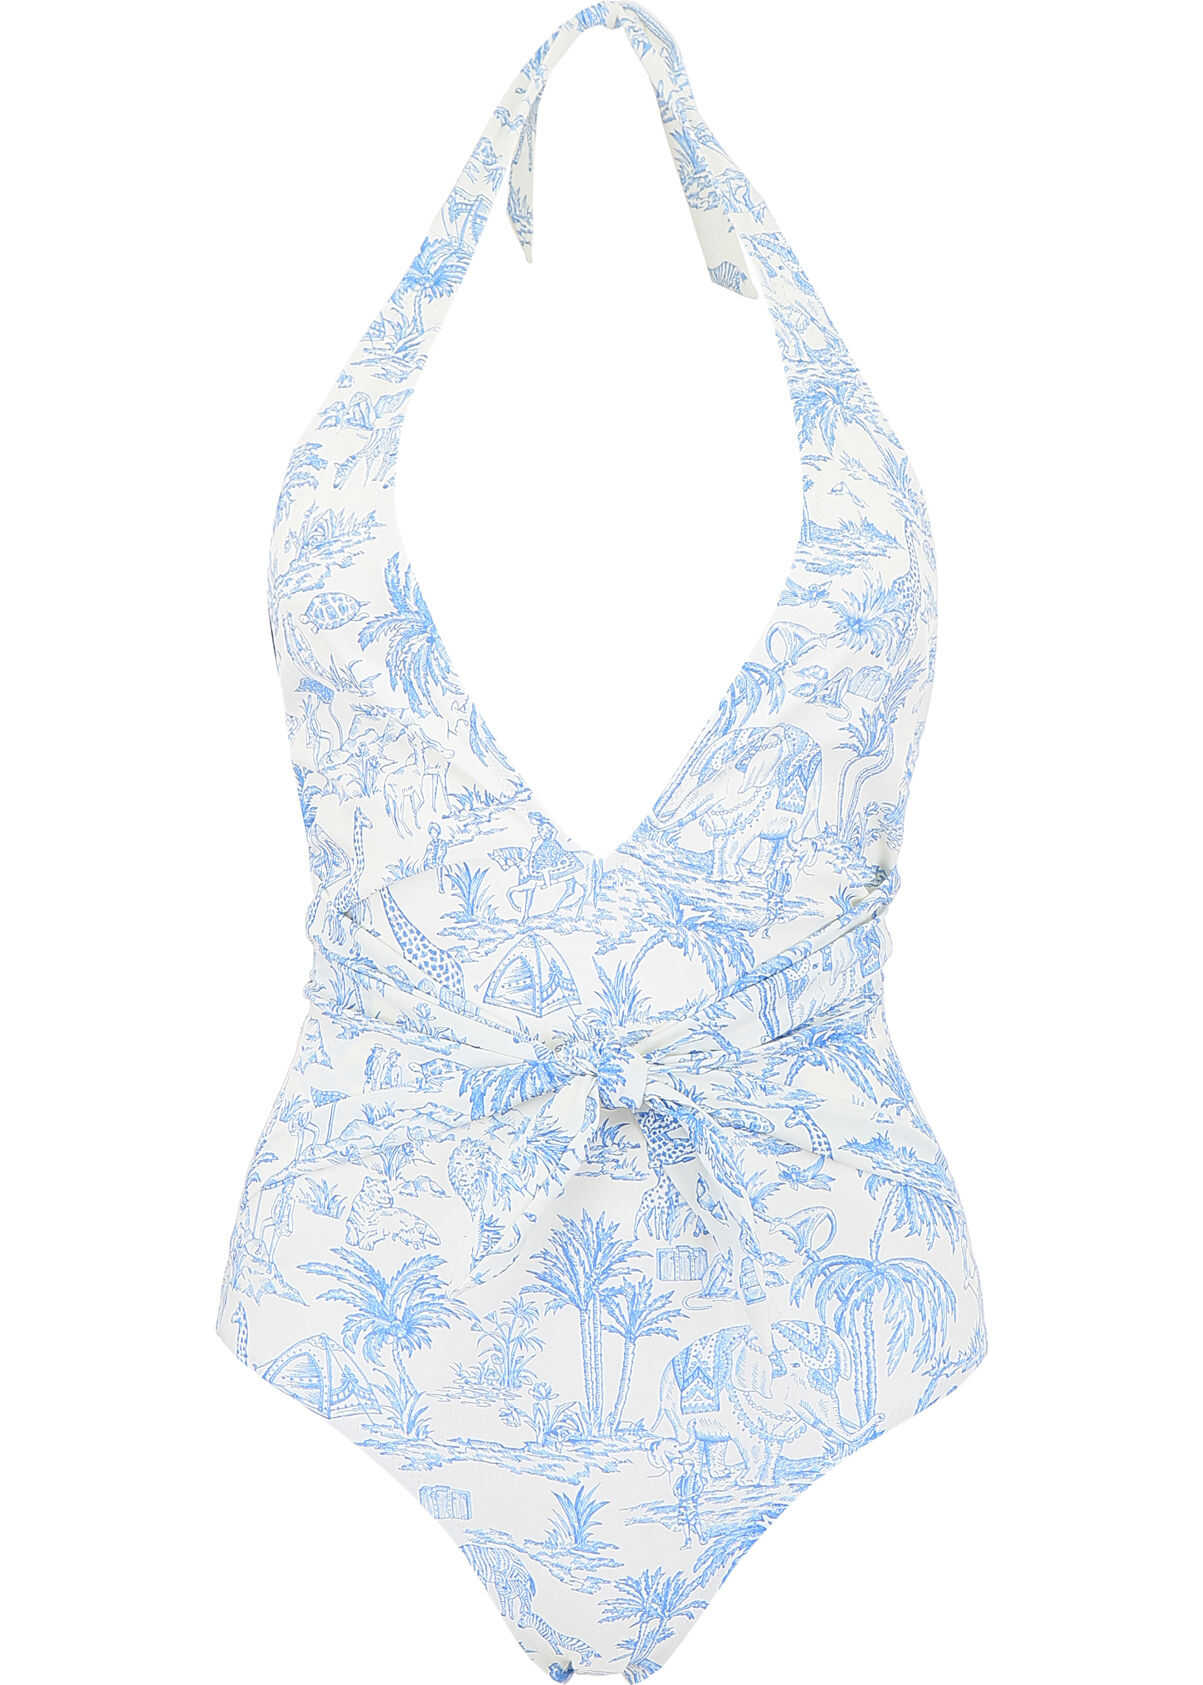 Tory Burch Printed Swimsuit IVORY FAR AND AWAY